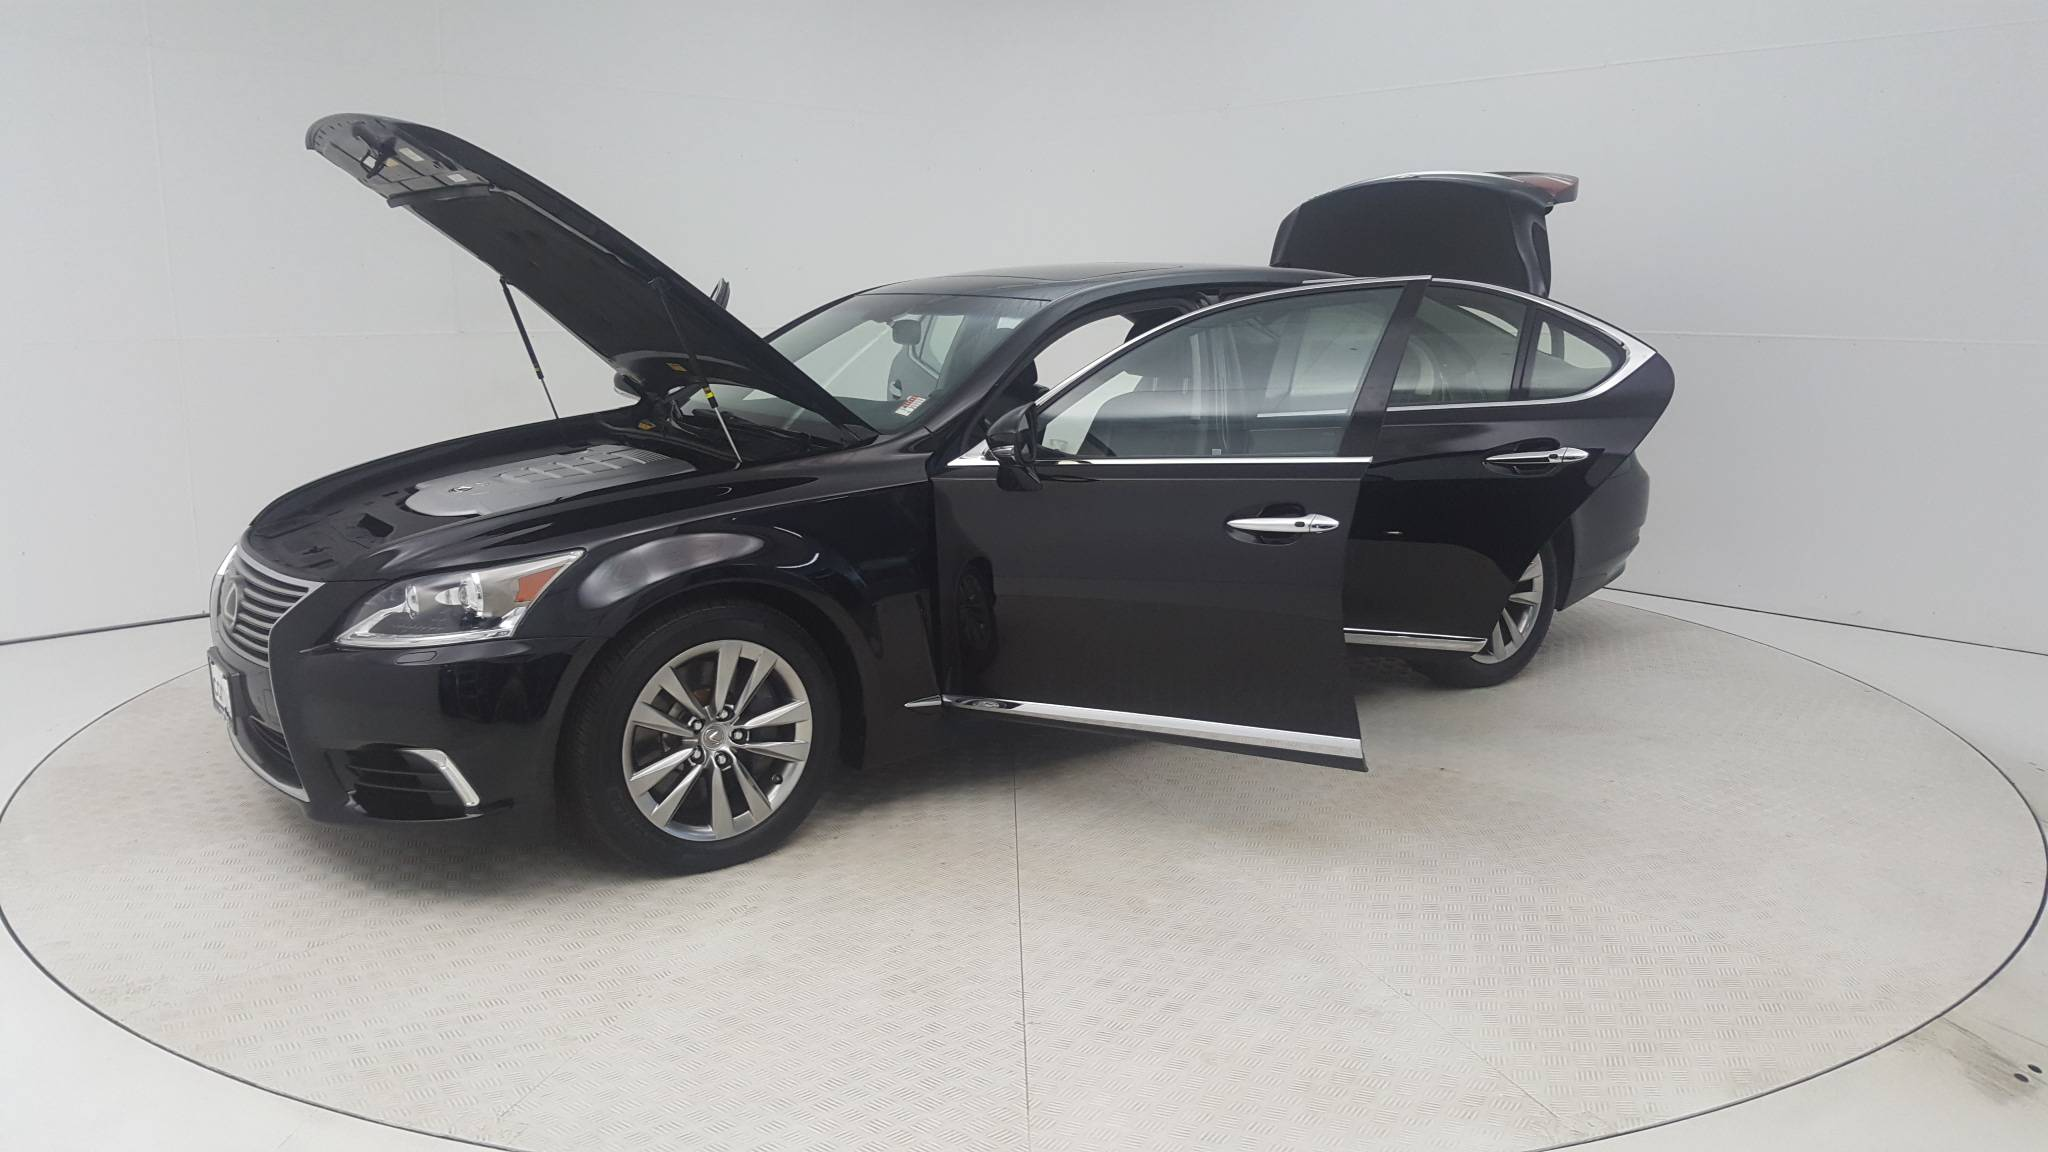 Pre Owned 2015 Lexus LS 460 4dr Car in Baltimore A7201